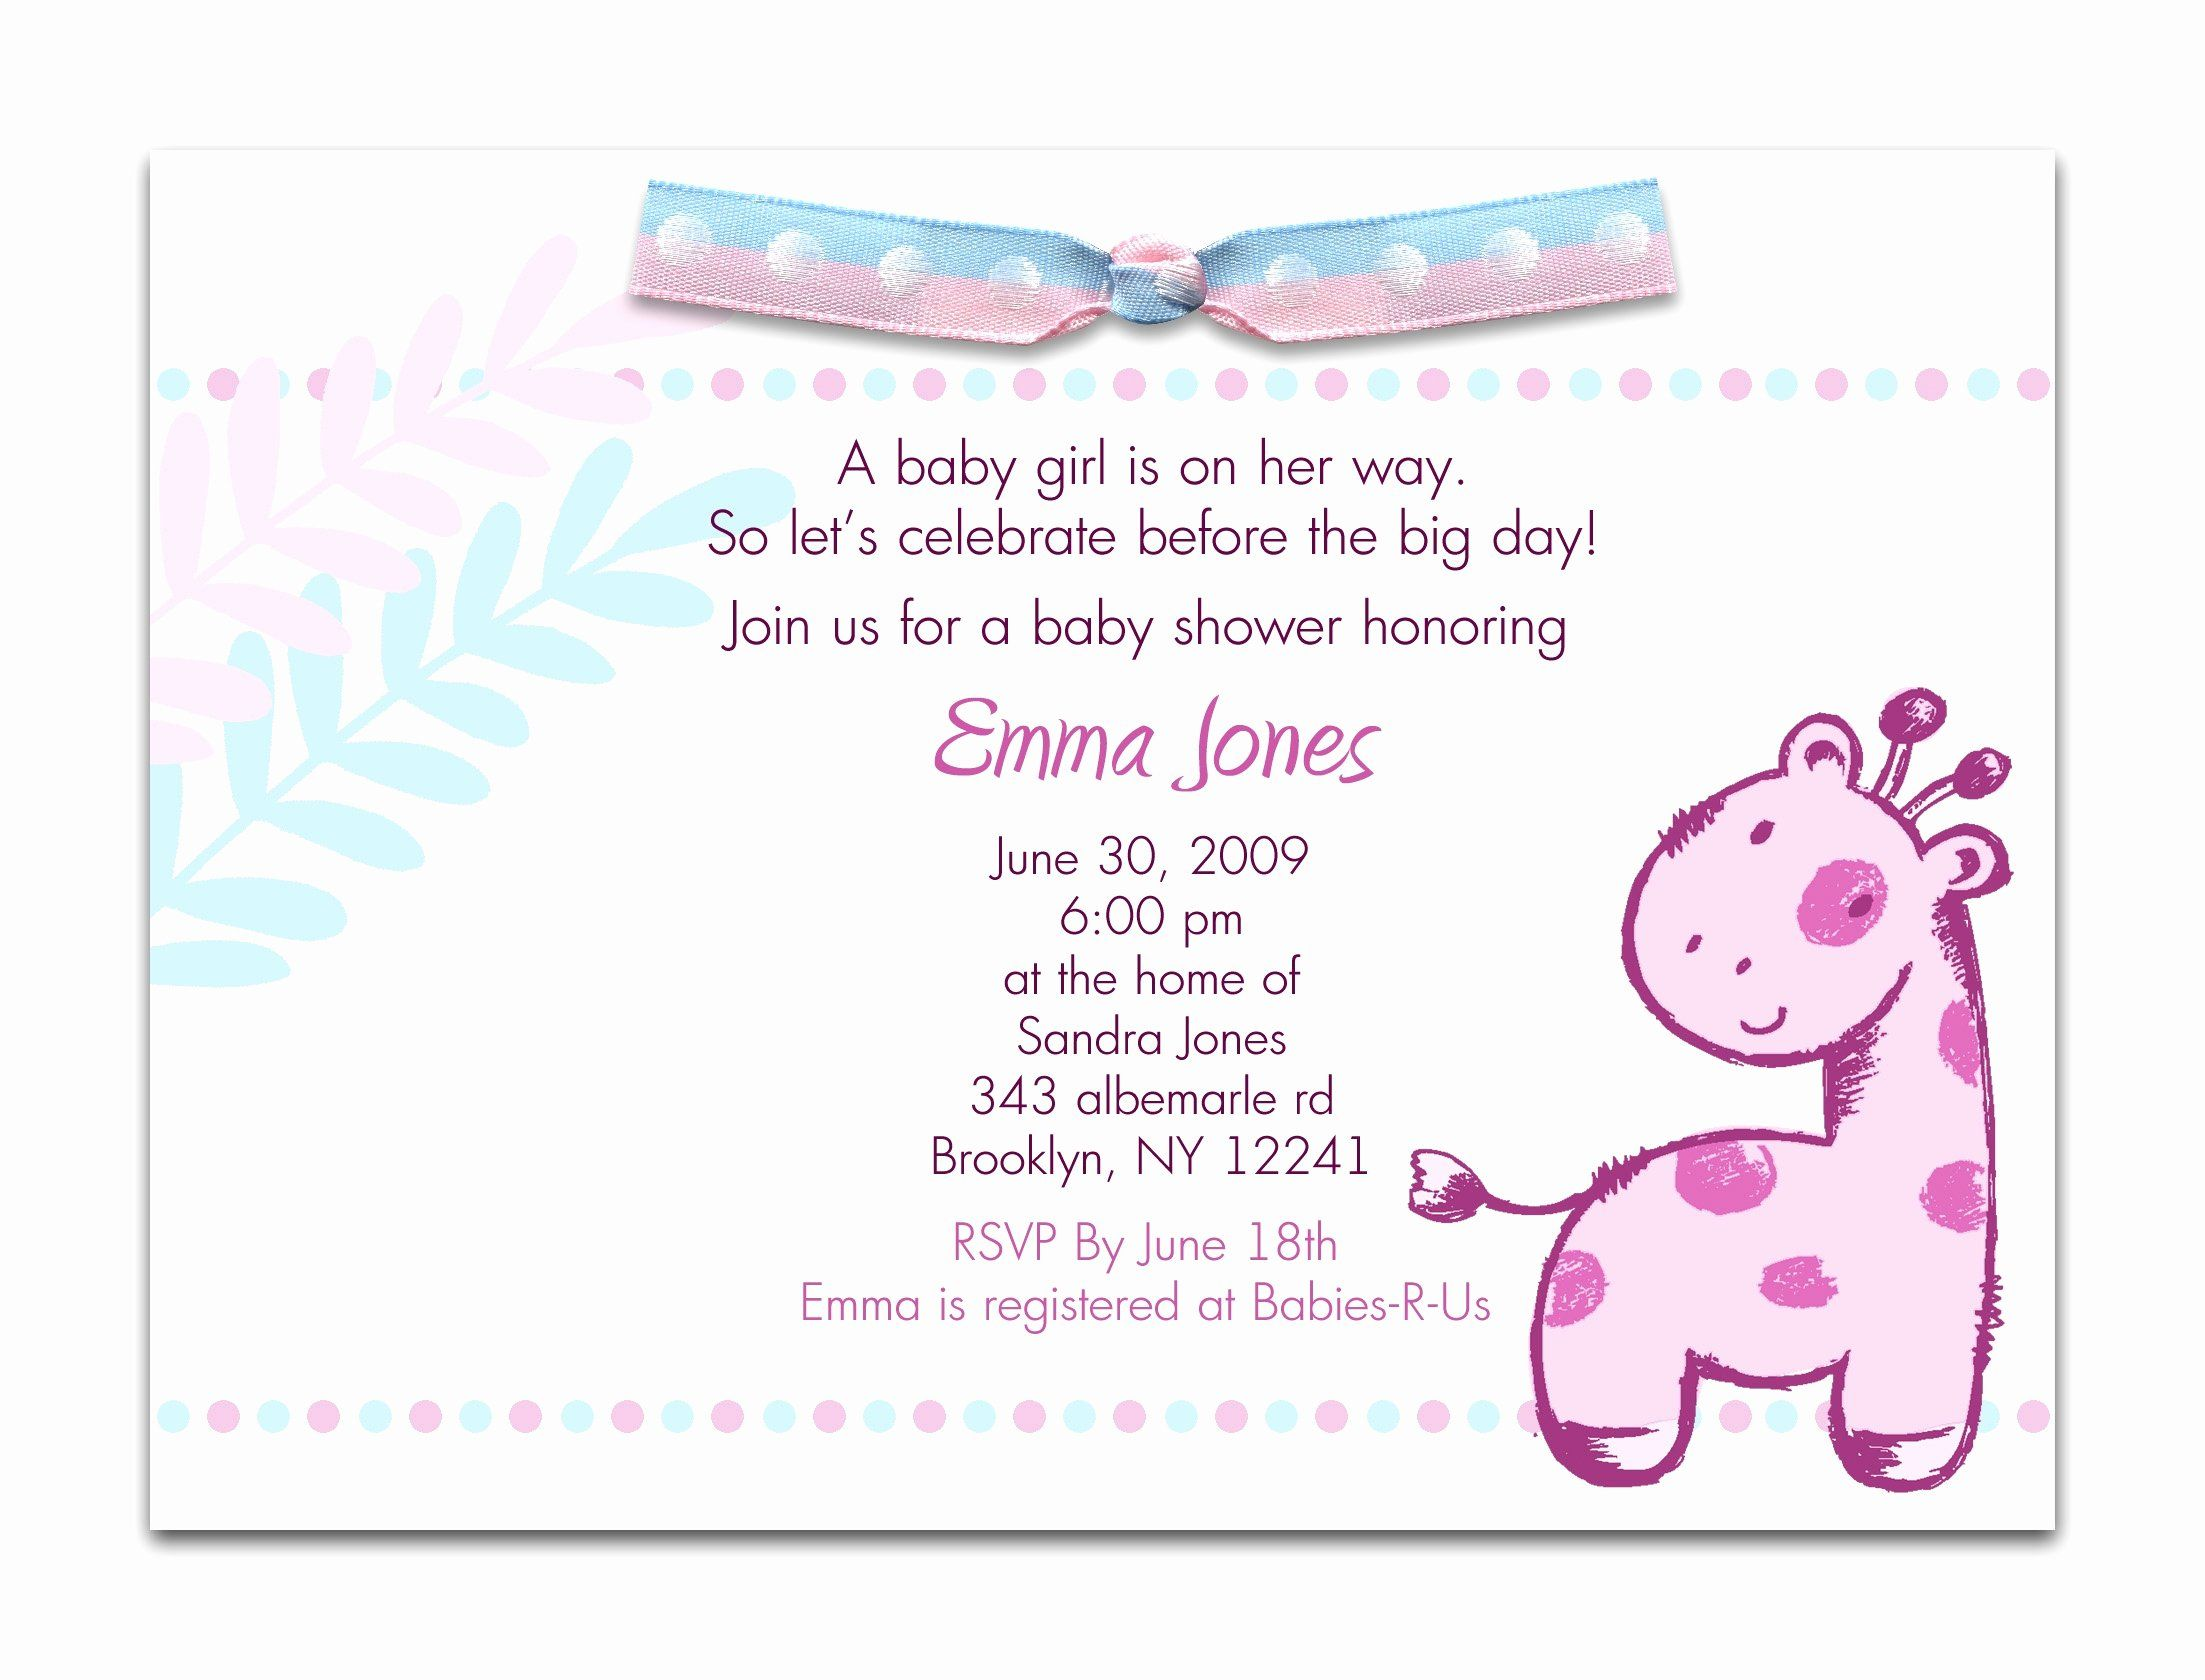 Office Baby Shower Invitation Template Awesome Fice Baby Shower Emai Baby Shower Invitation Cards Baby Shower Invitation Wording Sample Baby Shower Invitations